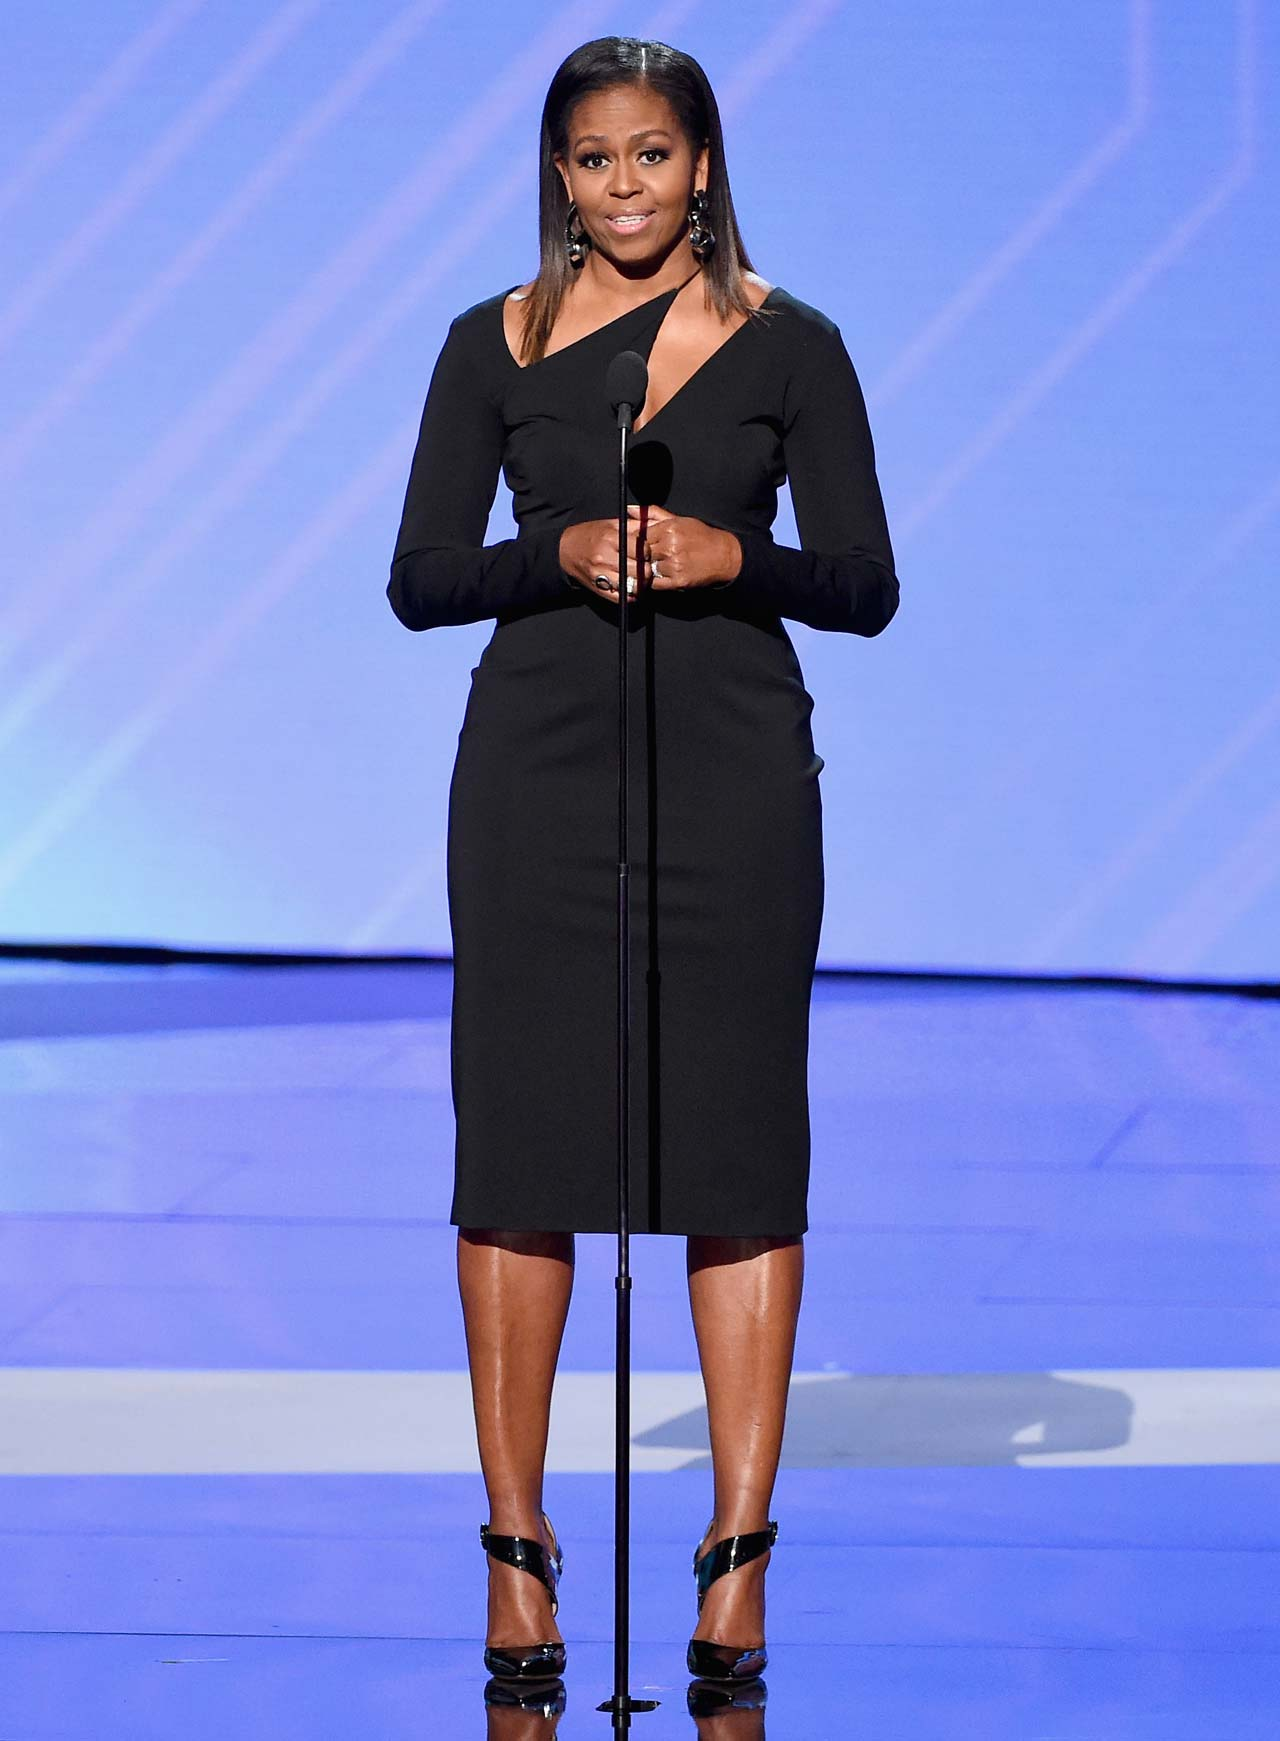 Michelle Obama In A Glam Black Cutout Gown At The 2017 ESPY Awards (1)